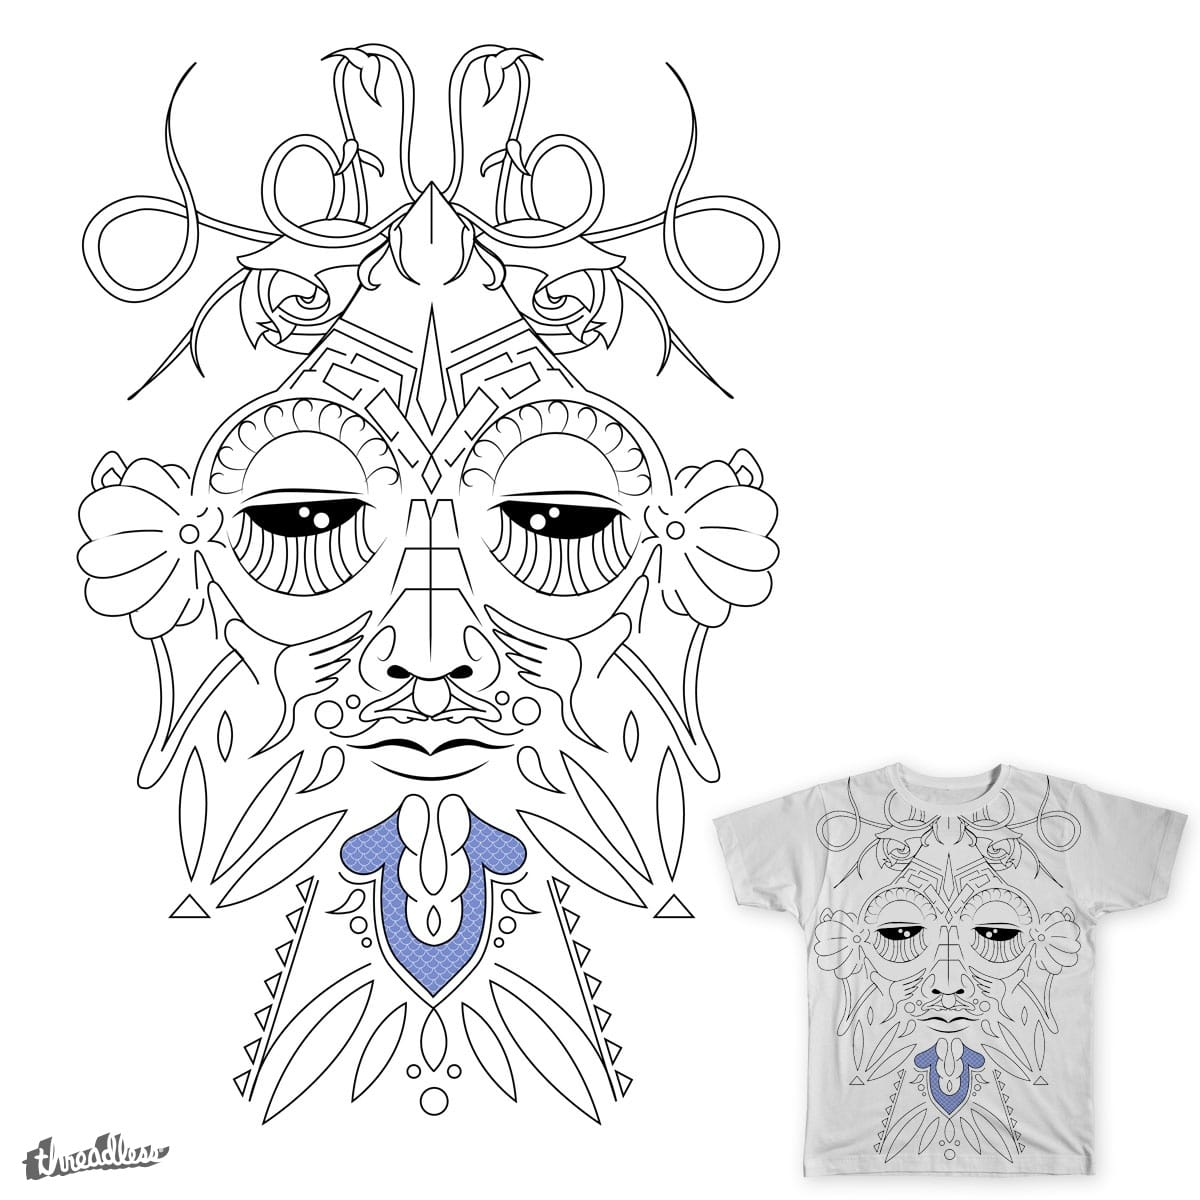 Symmetry by reid.scheidegger on Threadless